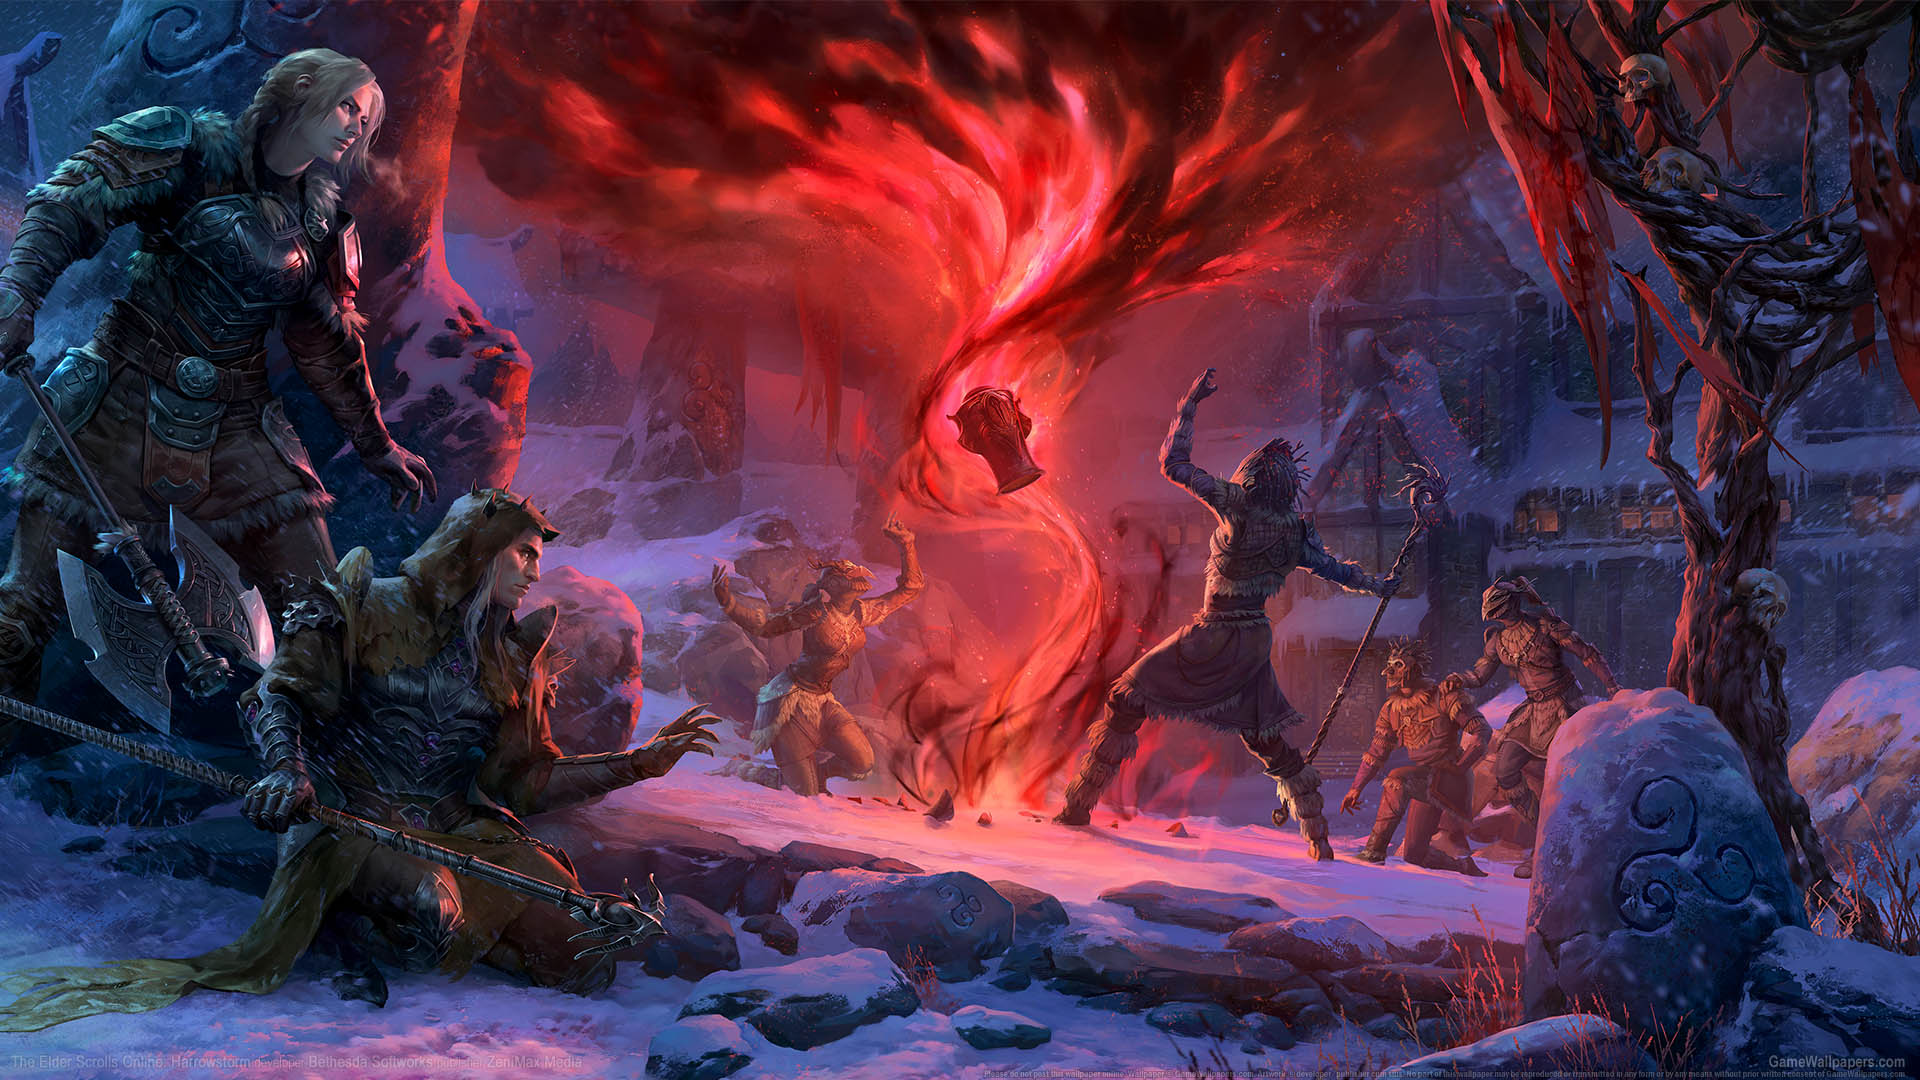 The Elder Scrolls Online: Harrowstorm wallpaper 01 1920x1080